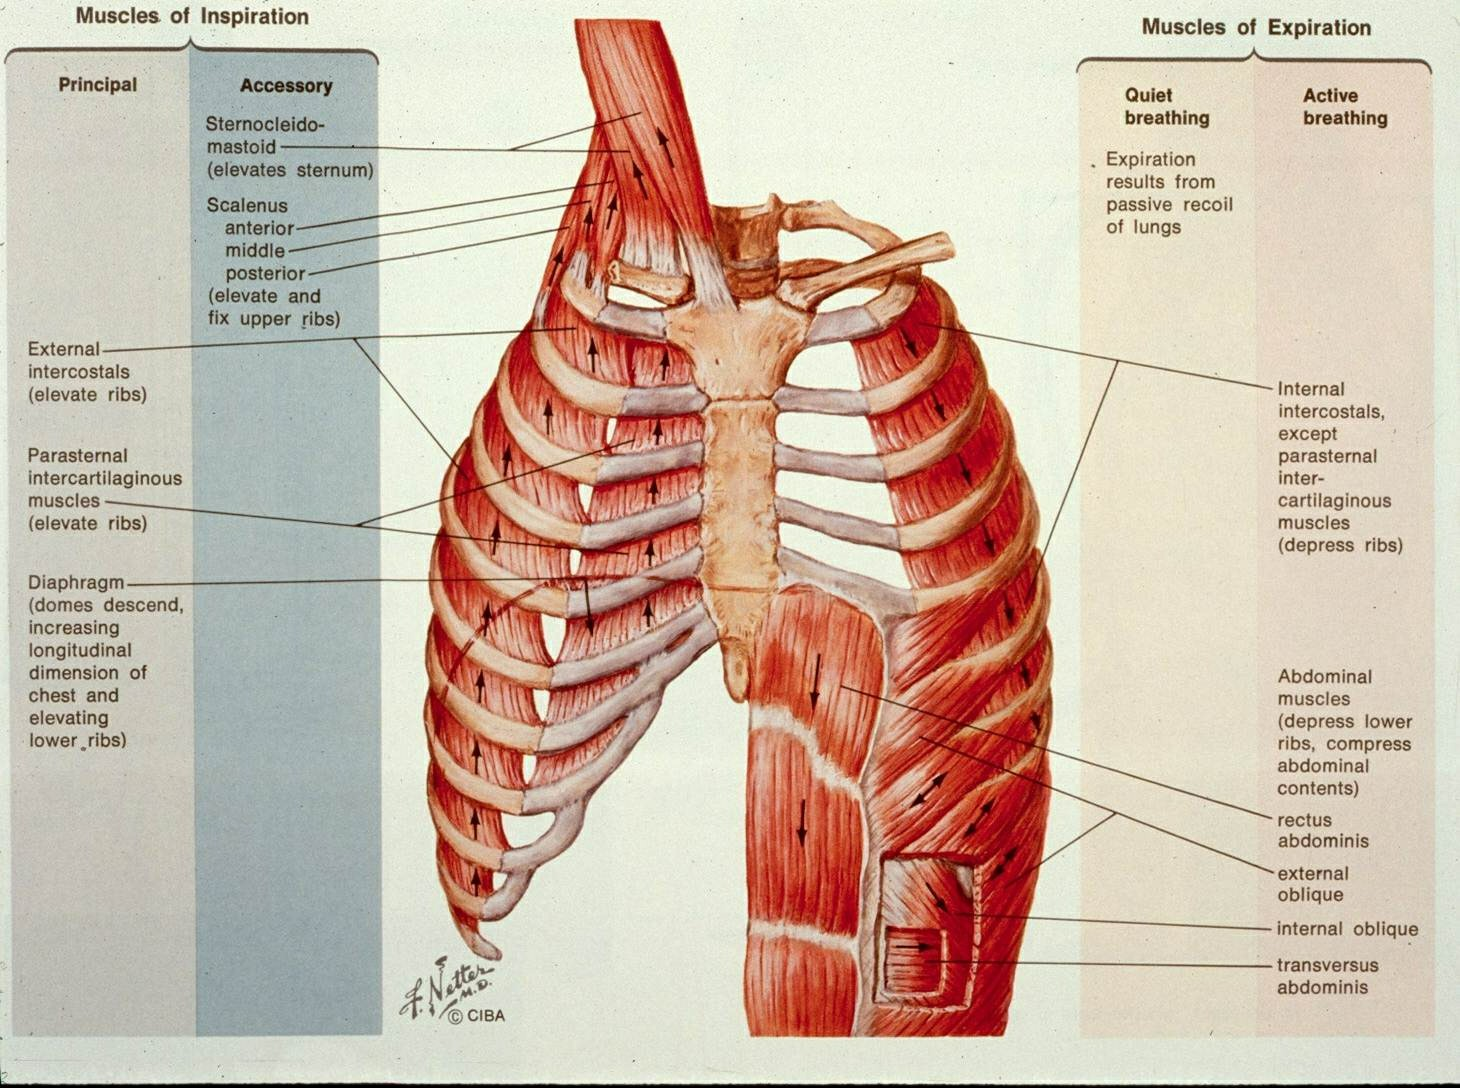 Muscles Of Respiratory System 1000+ Images About Anatomy On Pinterest | Lungs, Sphenoid Bone And Pictures Wallpapers